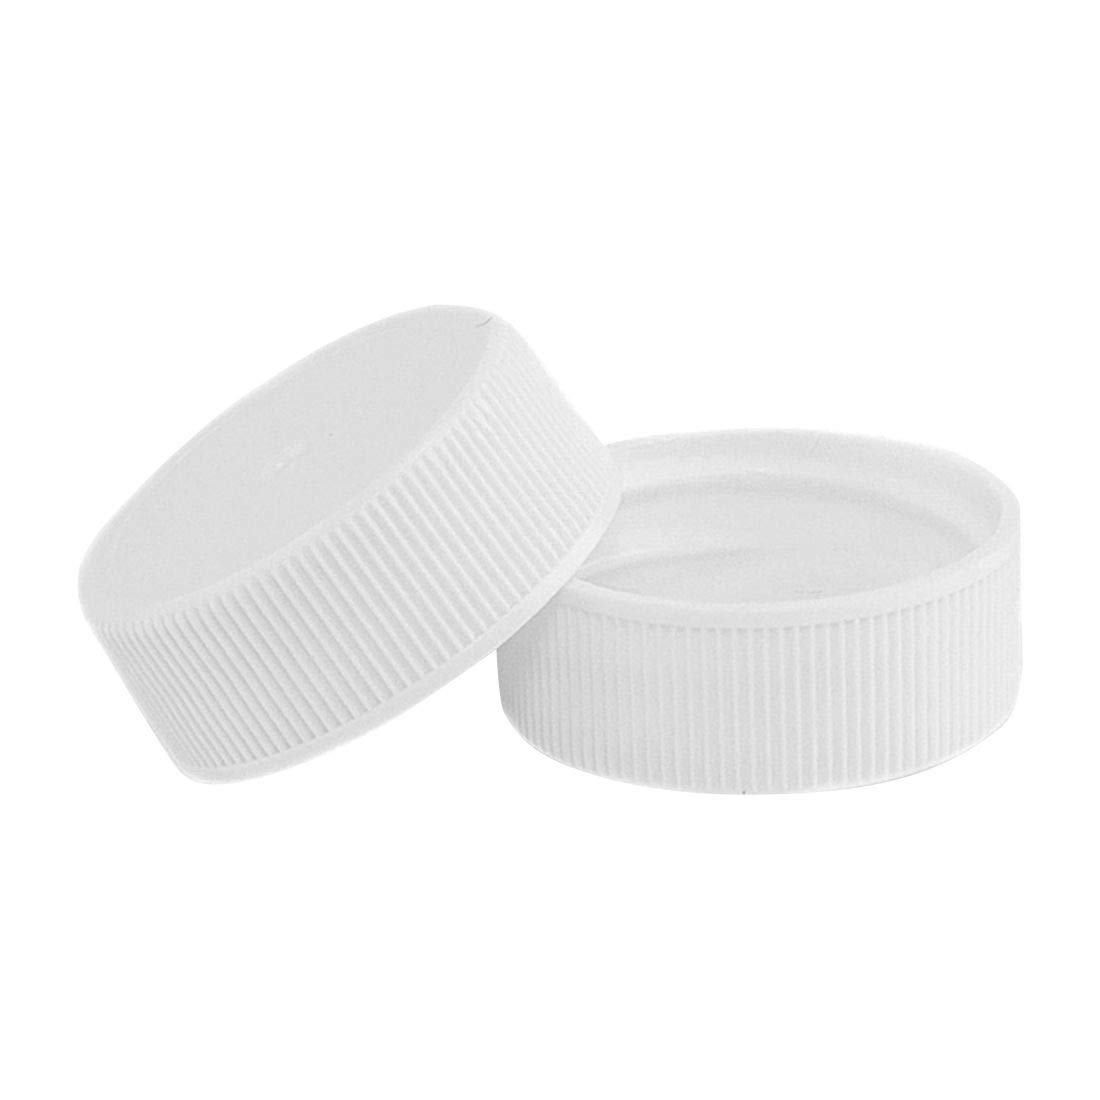 North Mountain Supply 28mm Silver Metal Screw Caps with Plastisol Liner Pack of 15 Leak Proof Lids